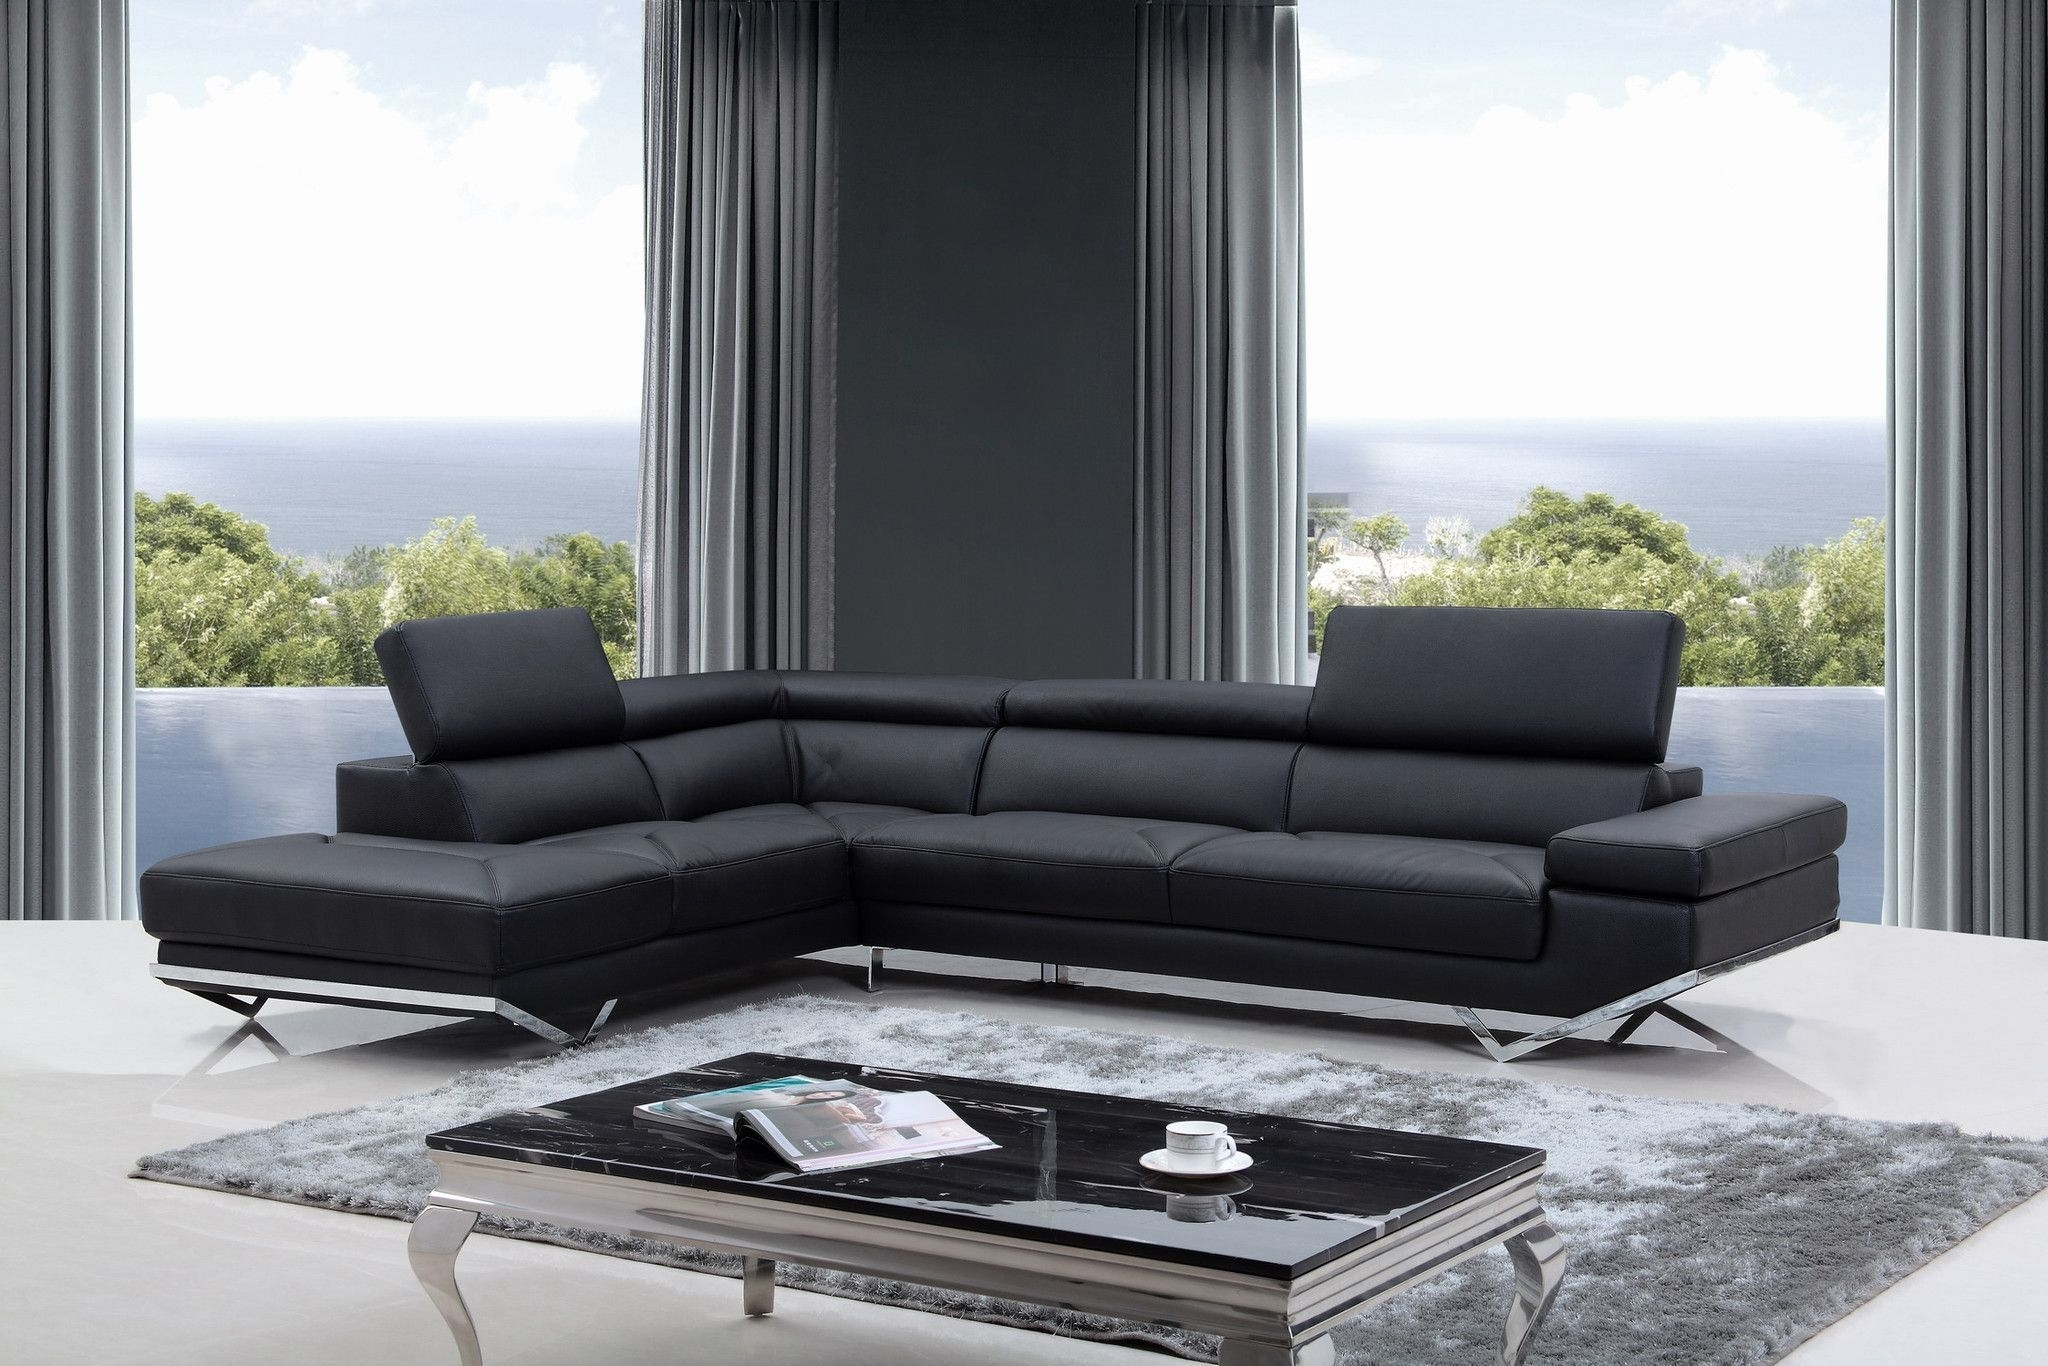 Divani Casa Quebec Modern Black Eco Leather Sectional Sofa (View 6 of 15)